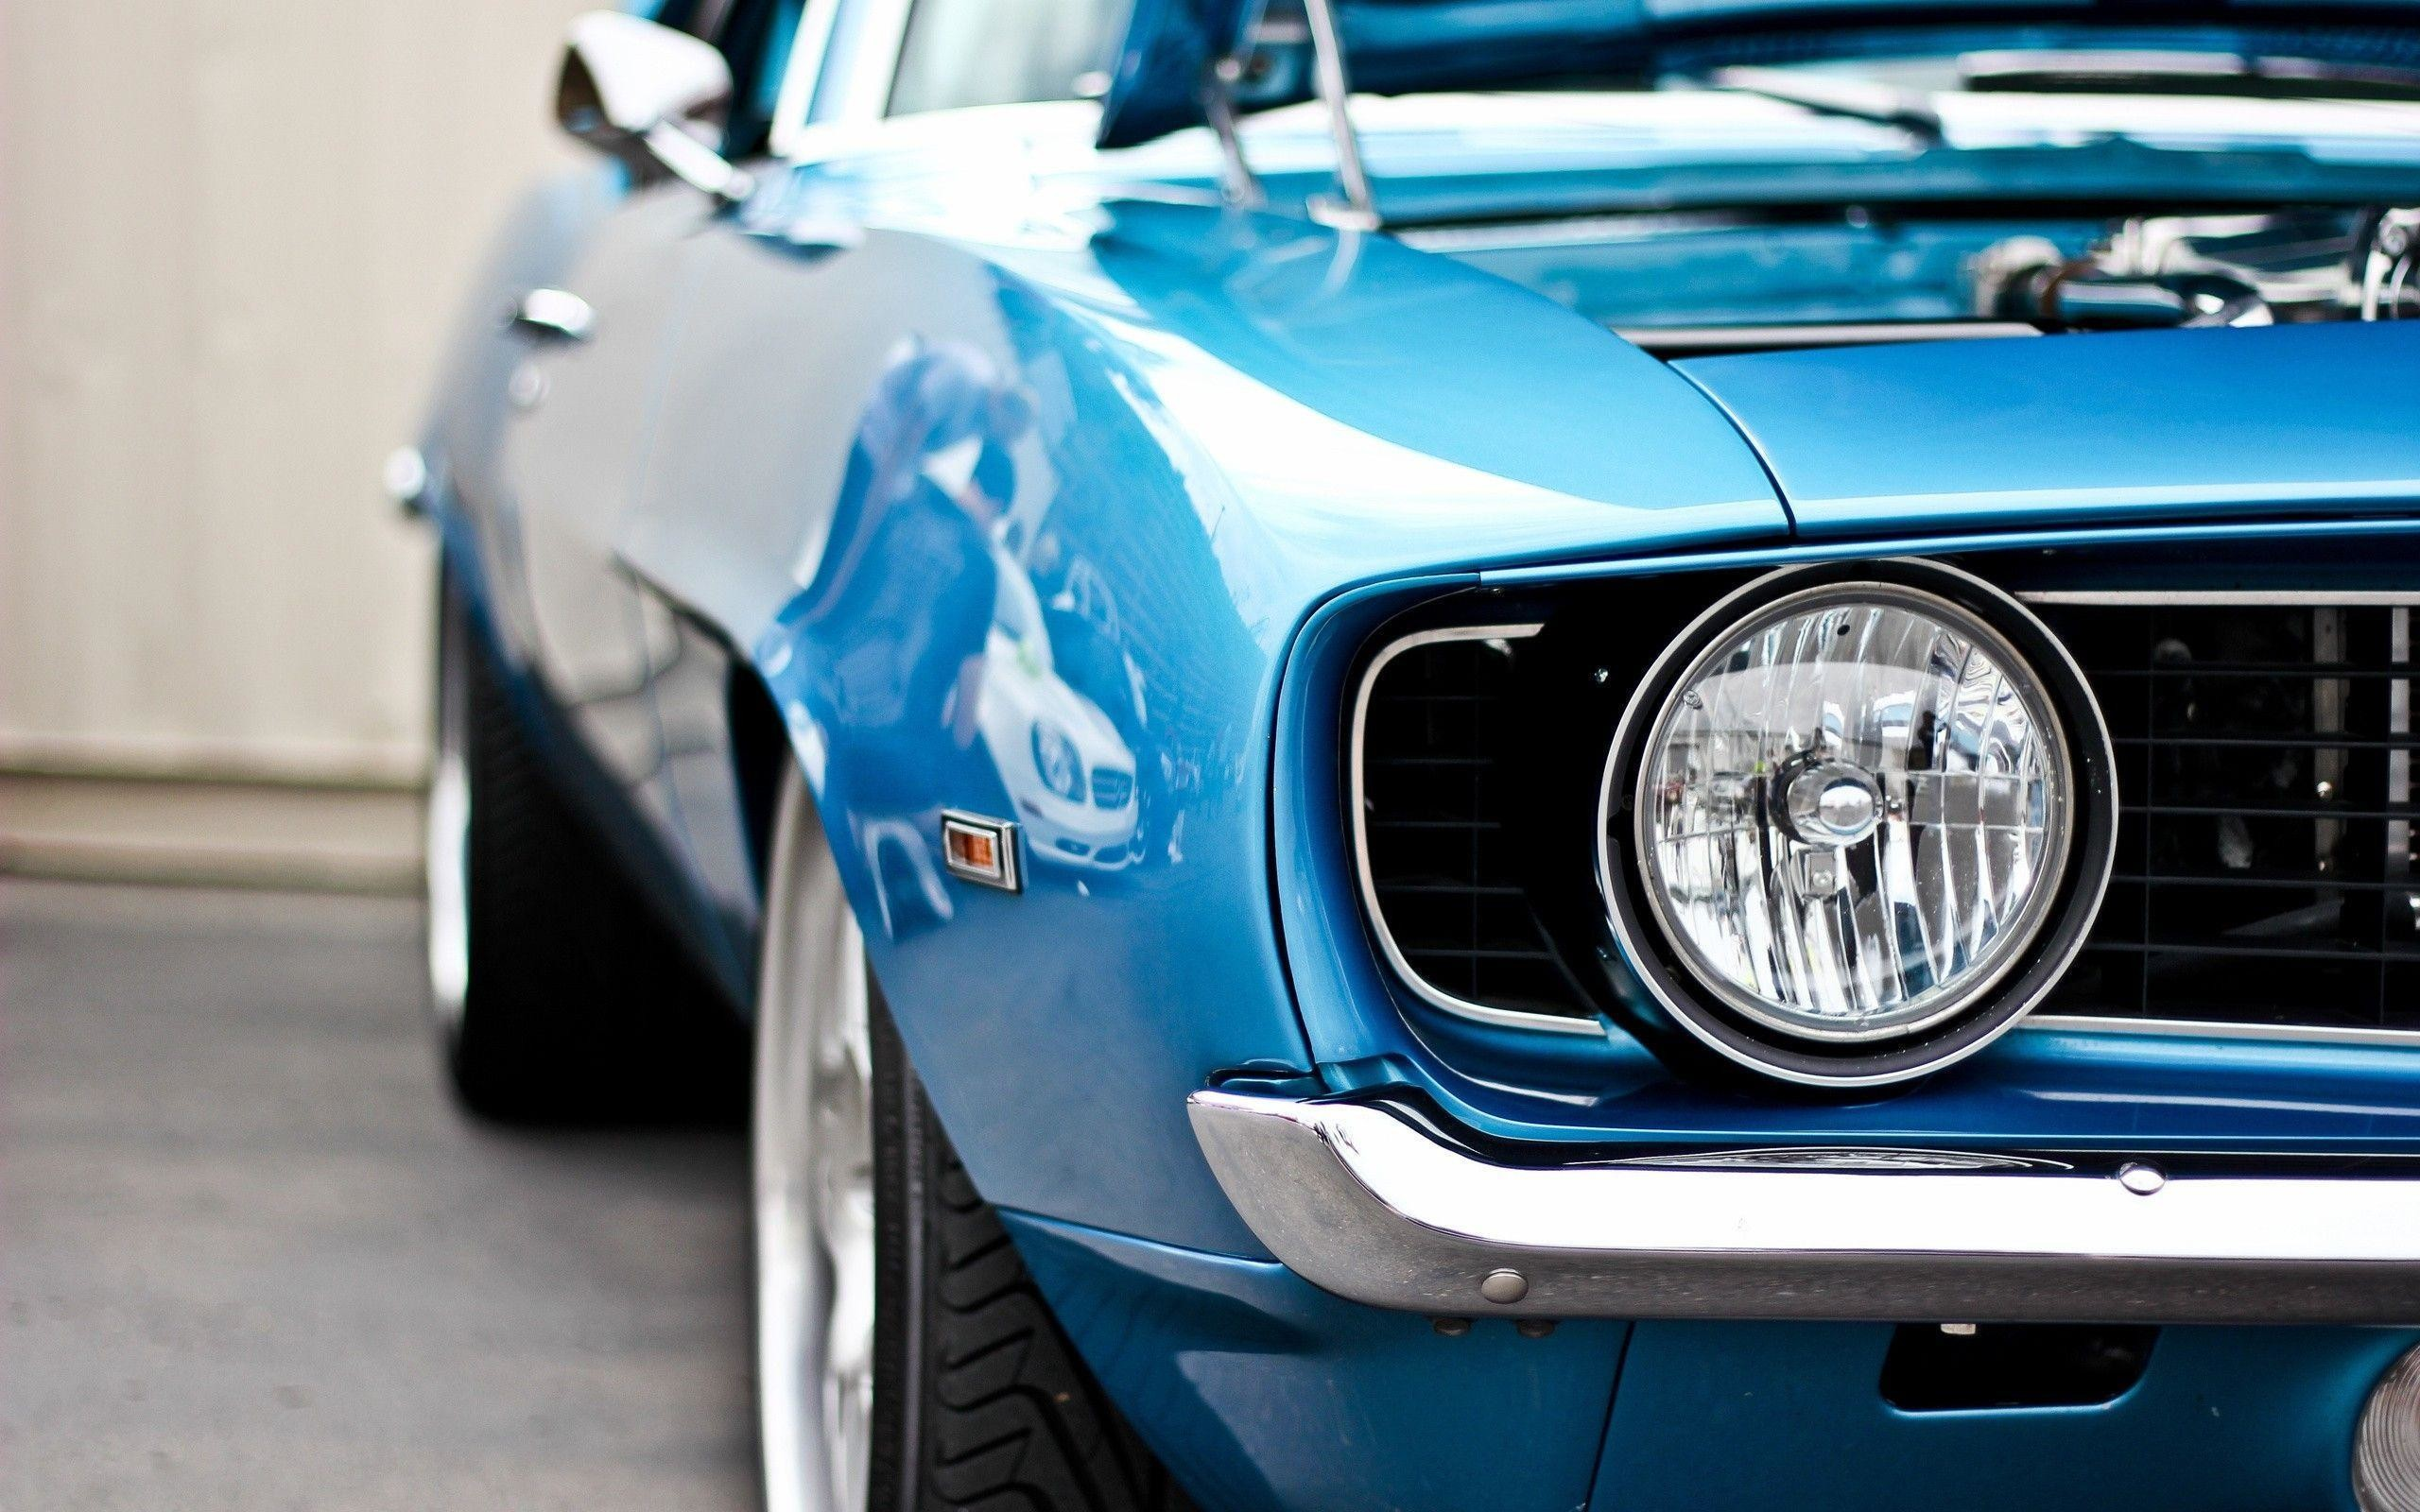 Ford Mustang Muscle Car Wallpaper with HD Car Wallpapers   Free .